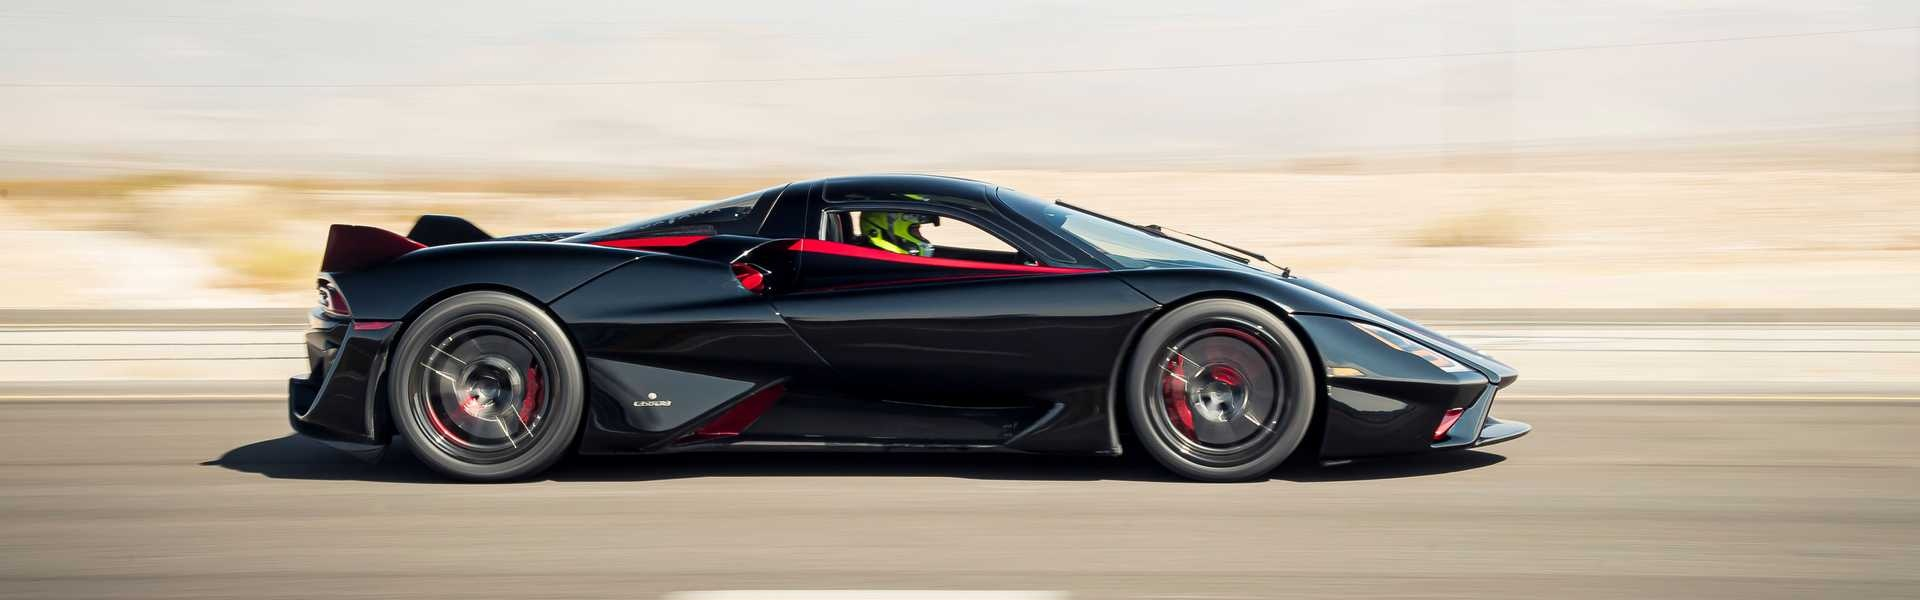 ssc-tuatara-becomes-the-fastest-production-car.jpg